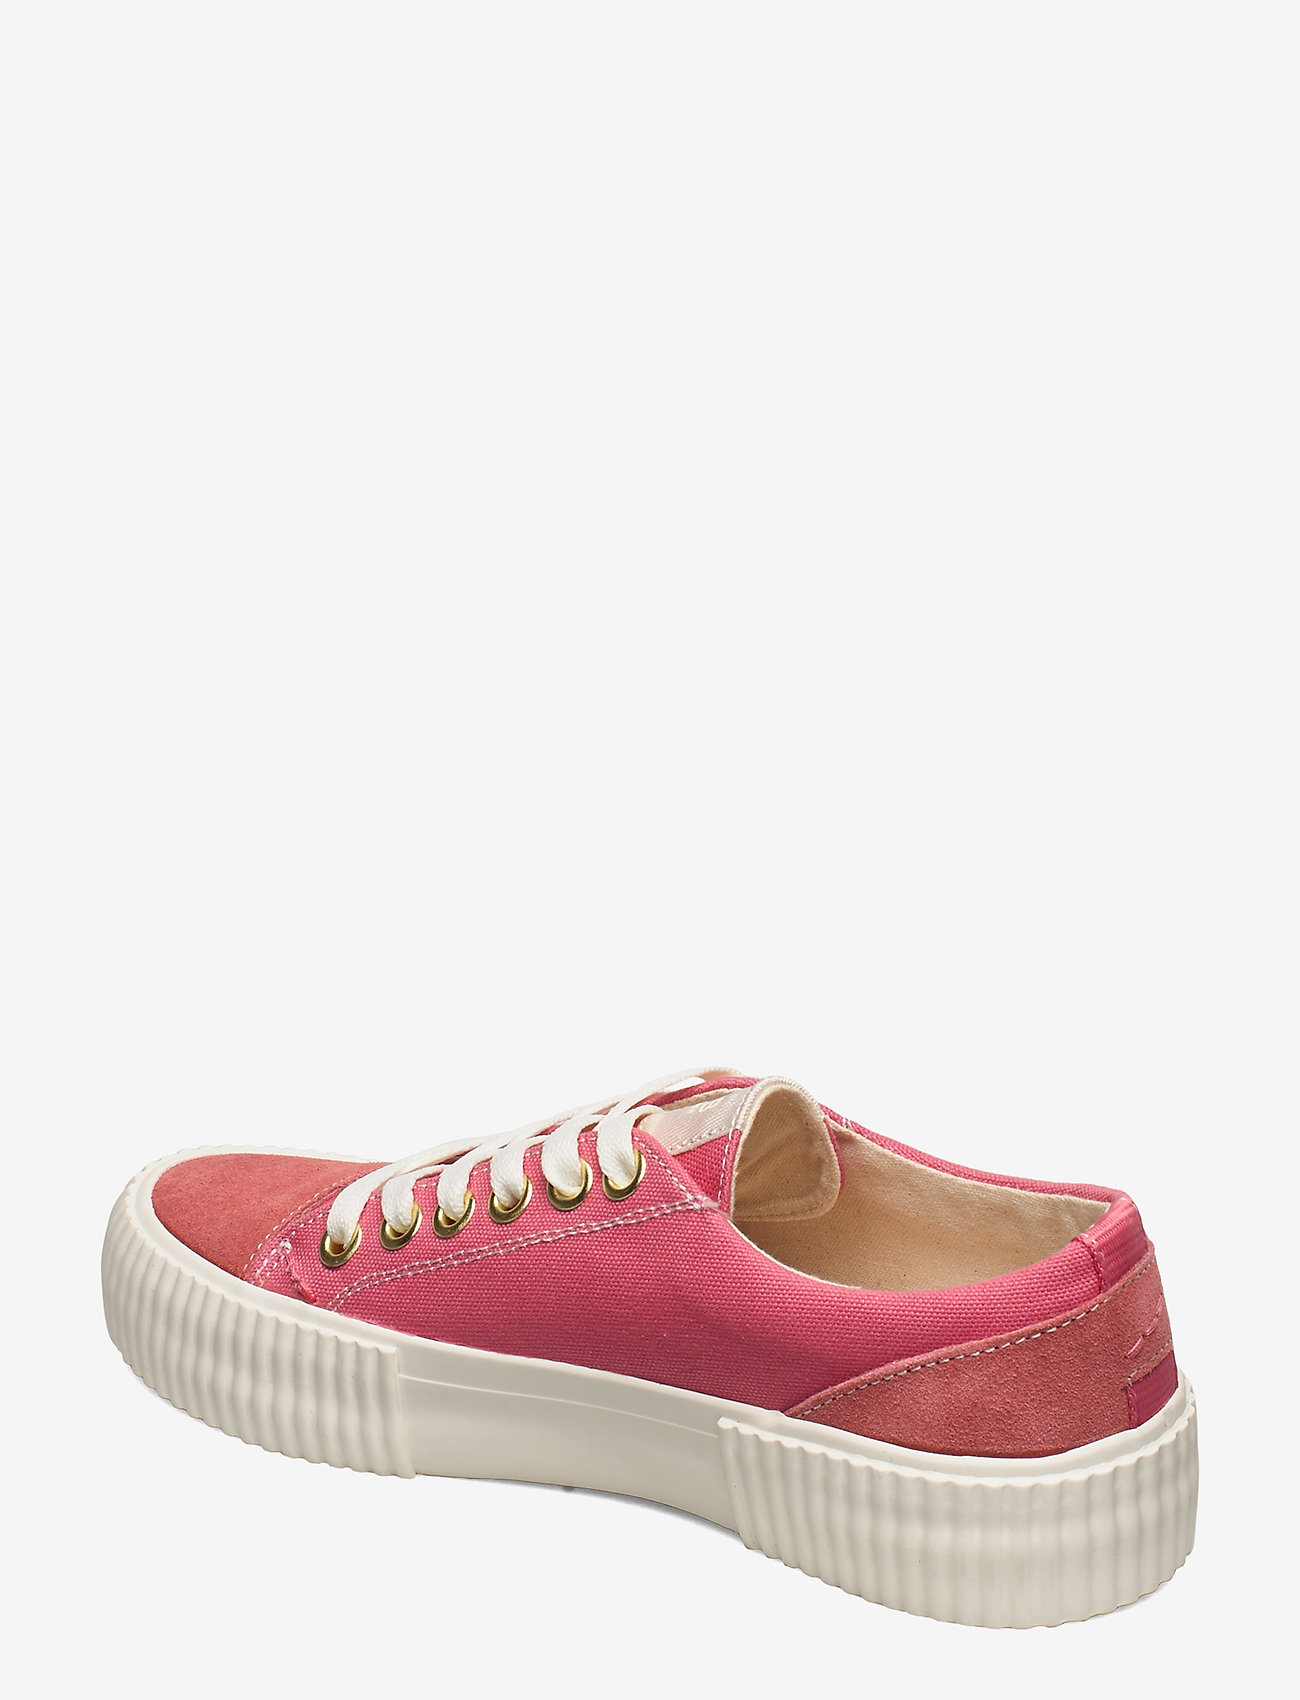 Stb-andrea T (Coral Red) - Shoe The Bear